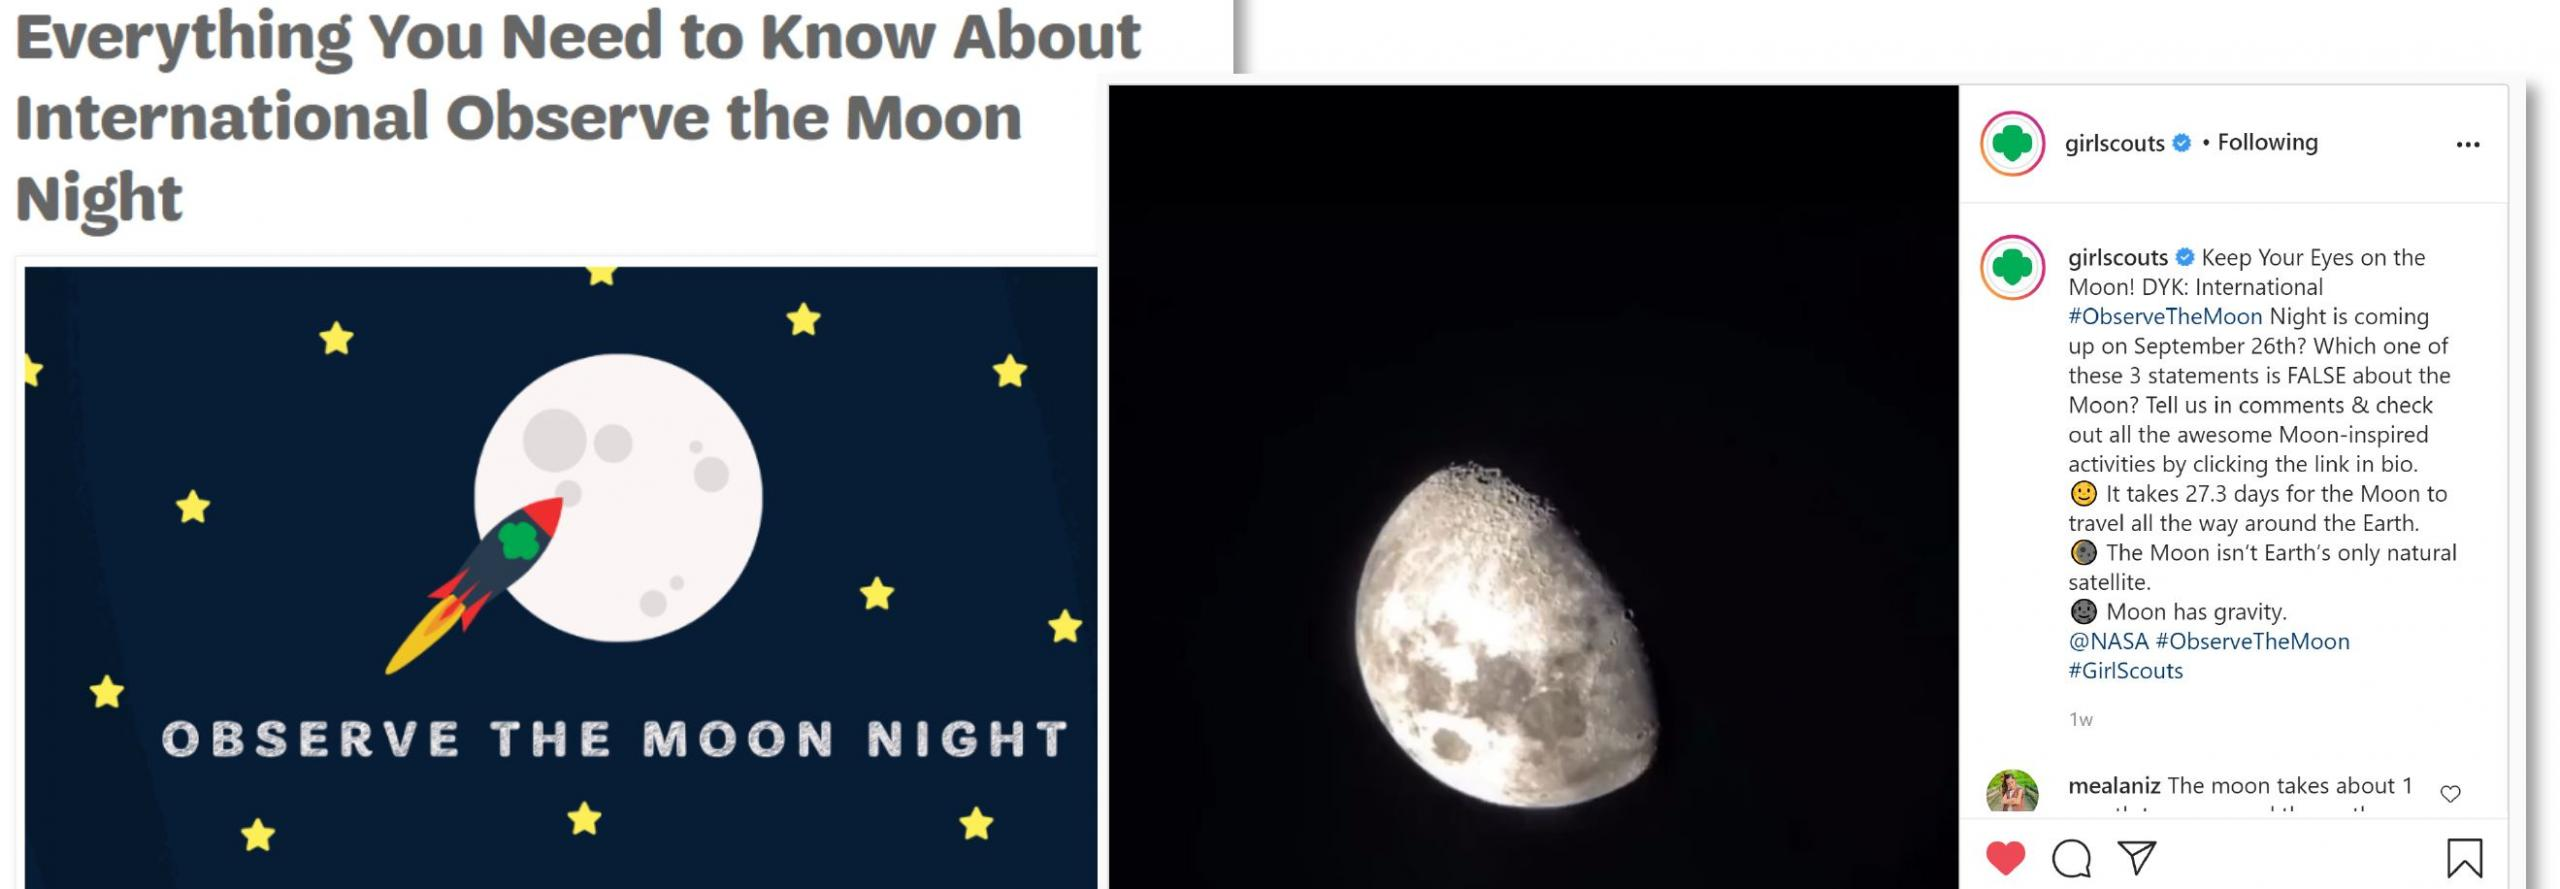 """Collage of two screenshots. The first is an article titled """"Everything You Need to Know About International Observe the Moon Night"""" with a cartoon rocket, moon, and stars. The second is a photo of the moon from the official girlscouts Instagram account."""